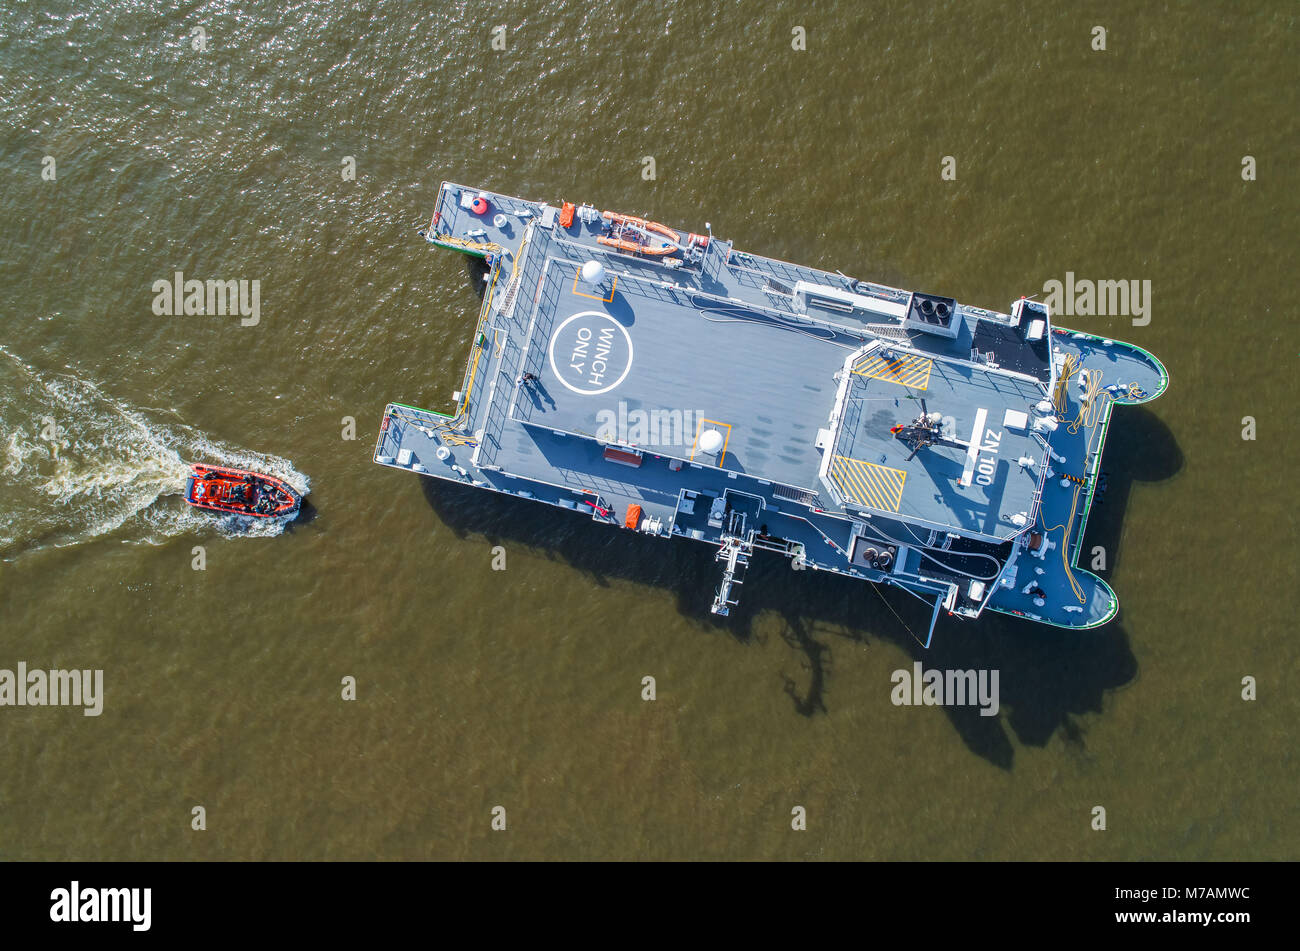 customs boat and operation boat on the Elbe, HH harbour, aerial shots - Stock Image